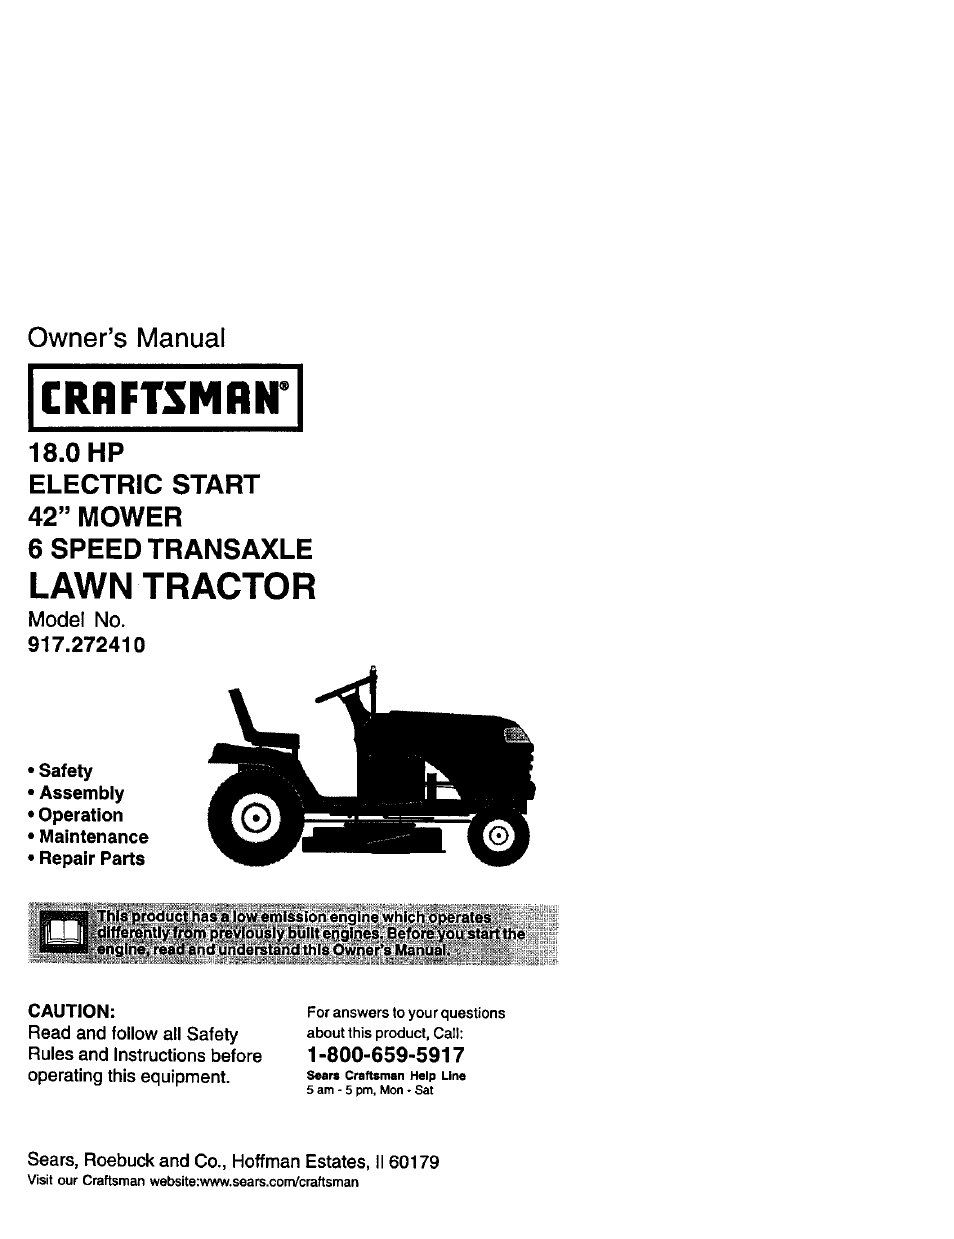 Craftsman 20 Hp Lawn Tractor Wiring Diagram Solutions For Sears Electrical Problem Repaired You 917 272410 User Manual 60 Pages